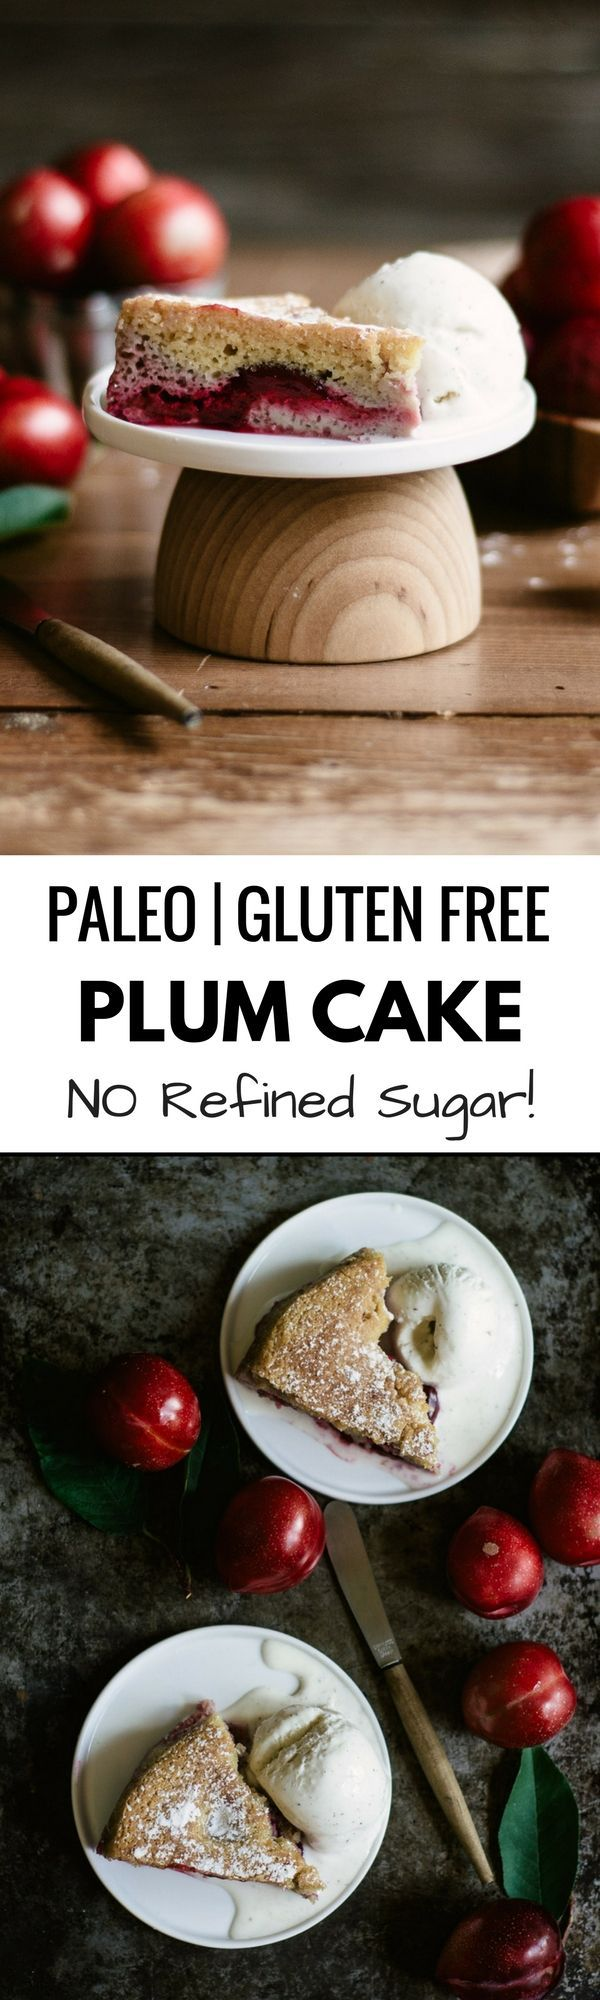 Paleo Plum Cake. Gluten free and NO refined sugar! This earthy seasonal cake is…